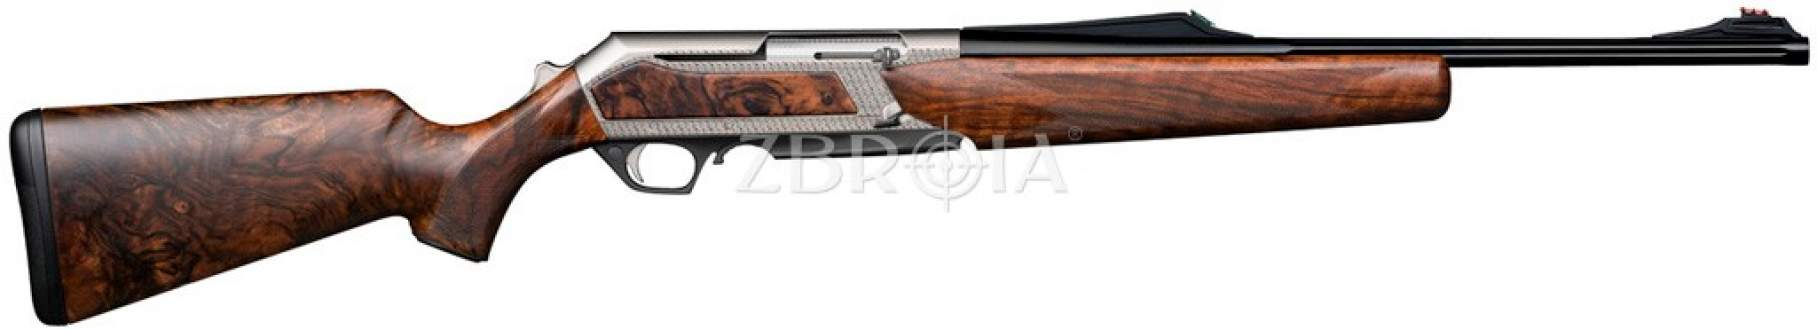 Карабин Browning BAR Zenith SF Platinum HC кал. 30-06